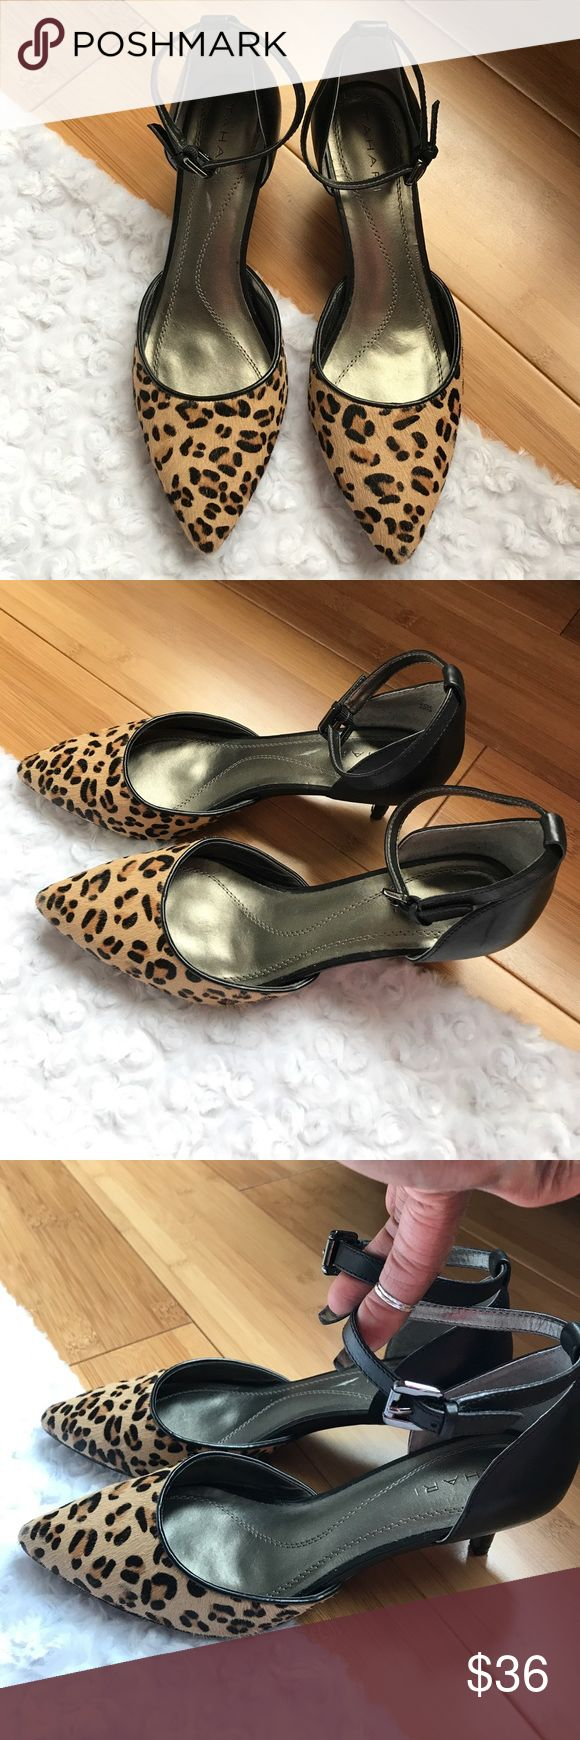 "•51• TAHARI LEATHER LEOPARD KITTEN HEELS Leather upper. Side buckle. (Gun metal) Almond toe. 2"" heel. These are a great staple for so many occasions. Have FuN!! Tahari Shoes"